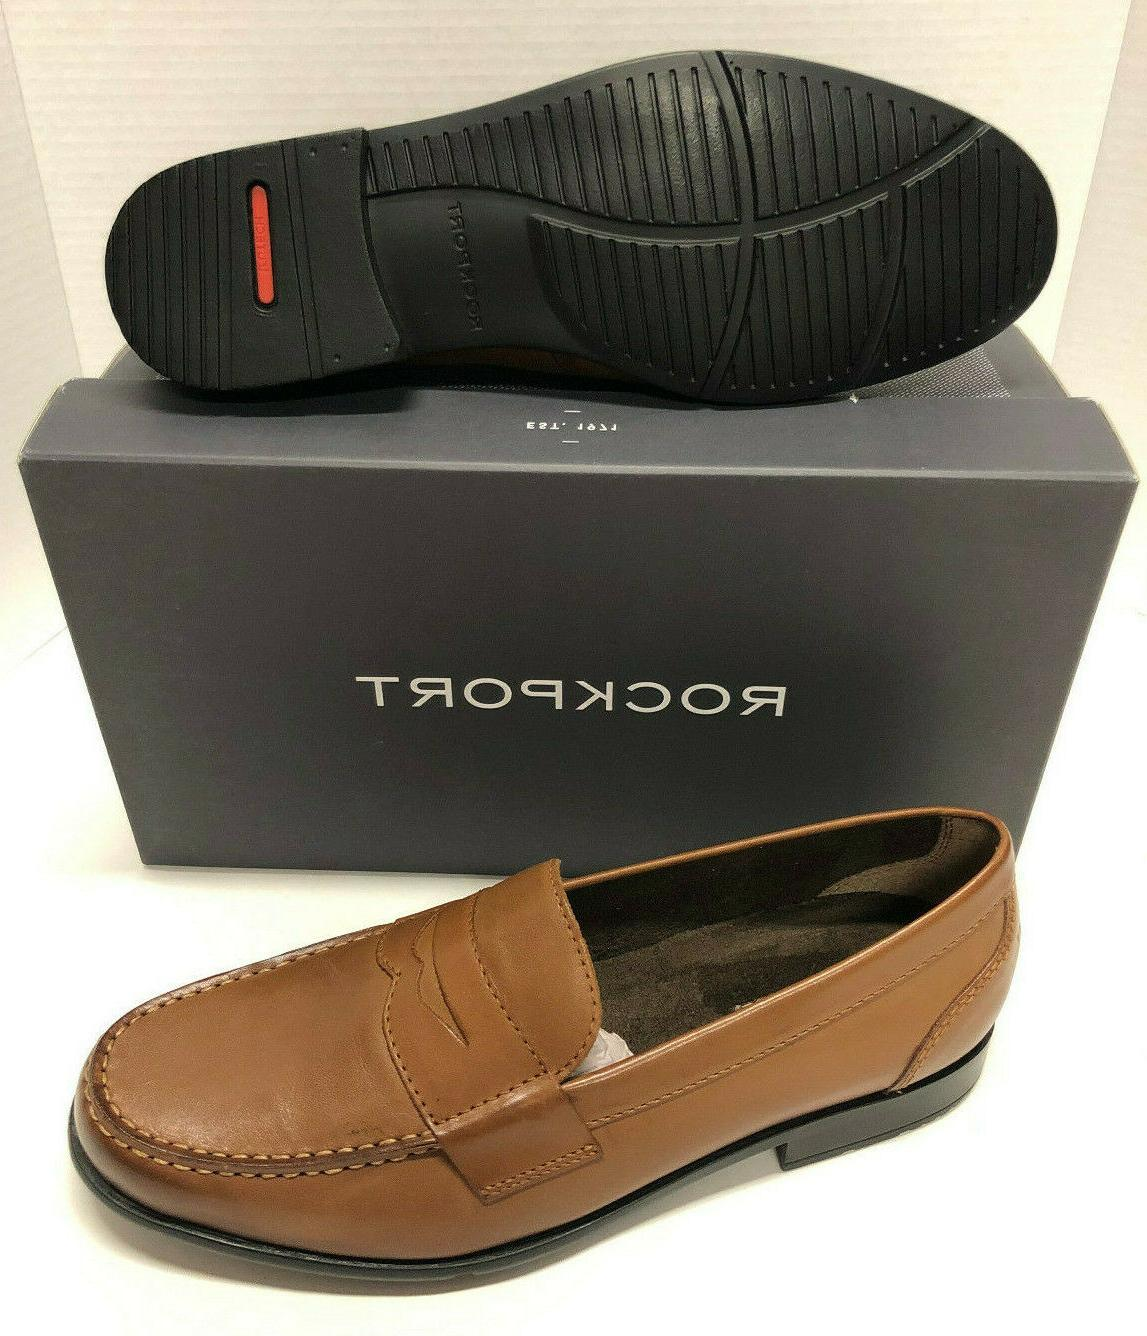 penny loafers brown leather mens dress casual